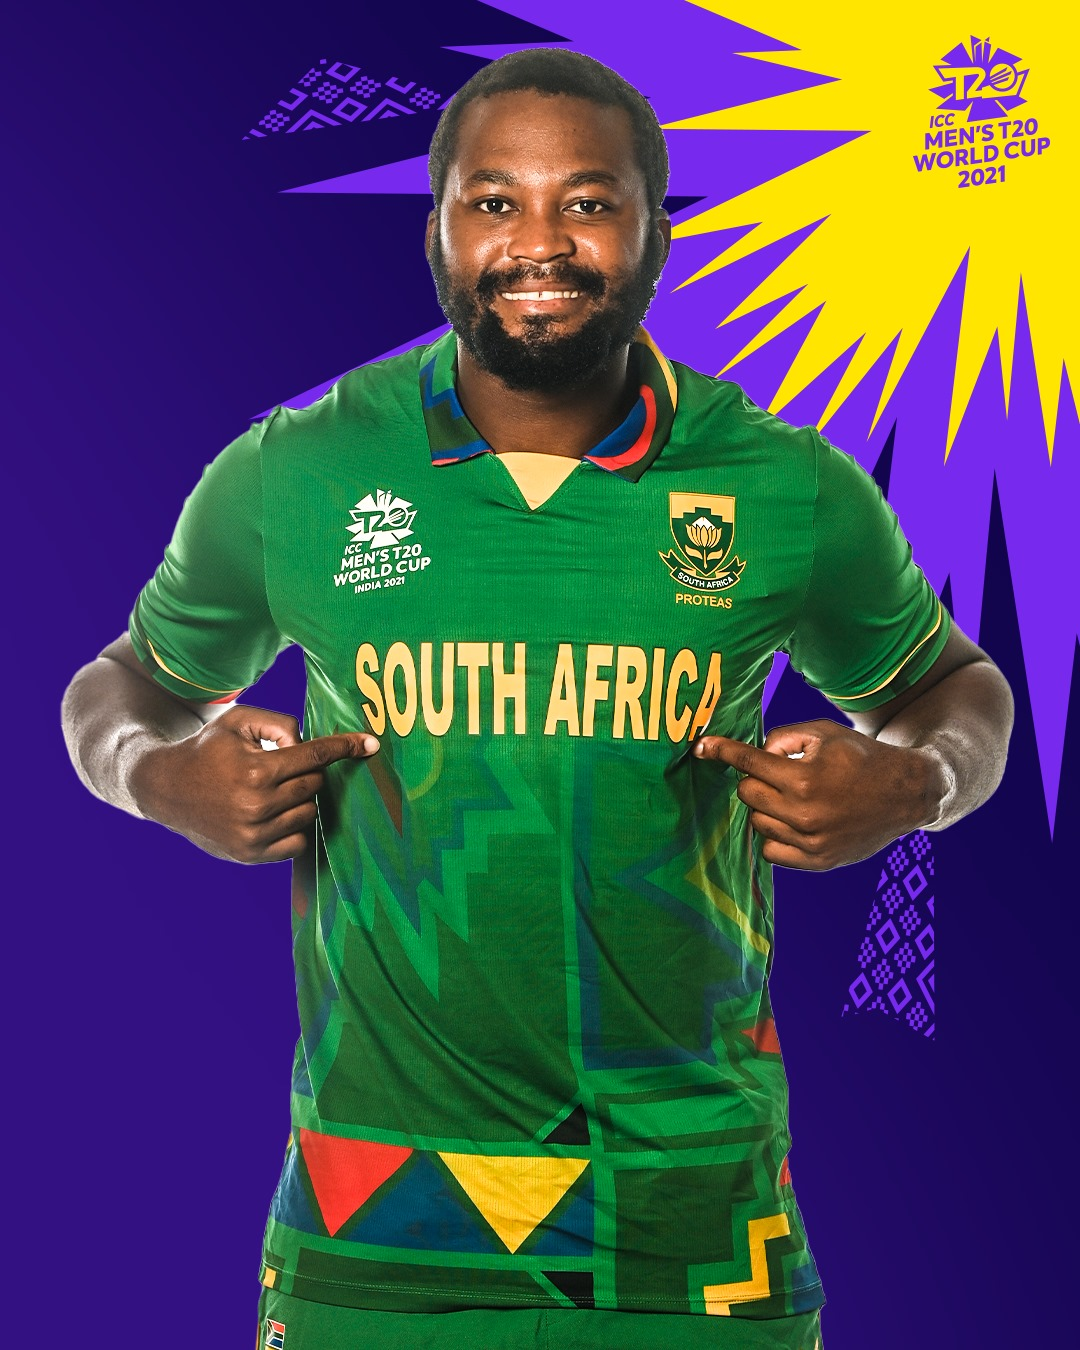 South African Team Jersey for T20 World Cup 2021